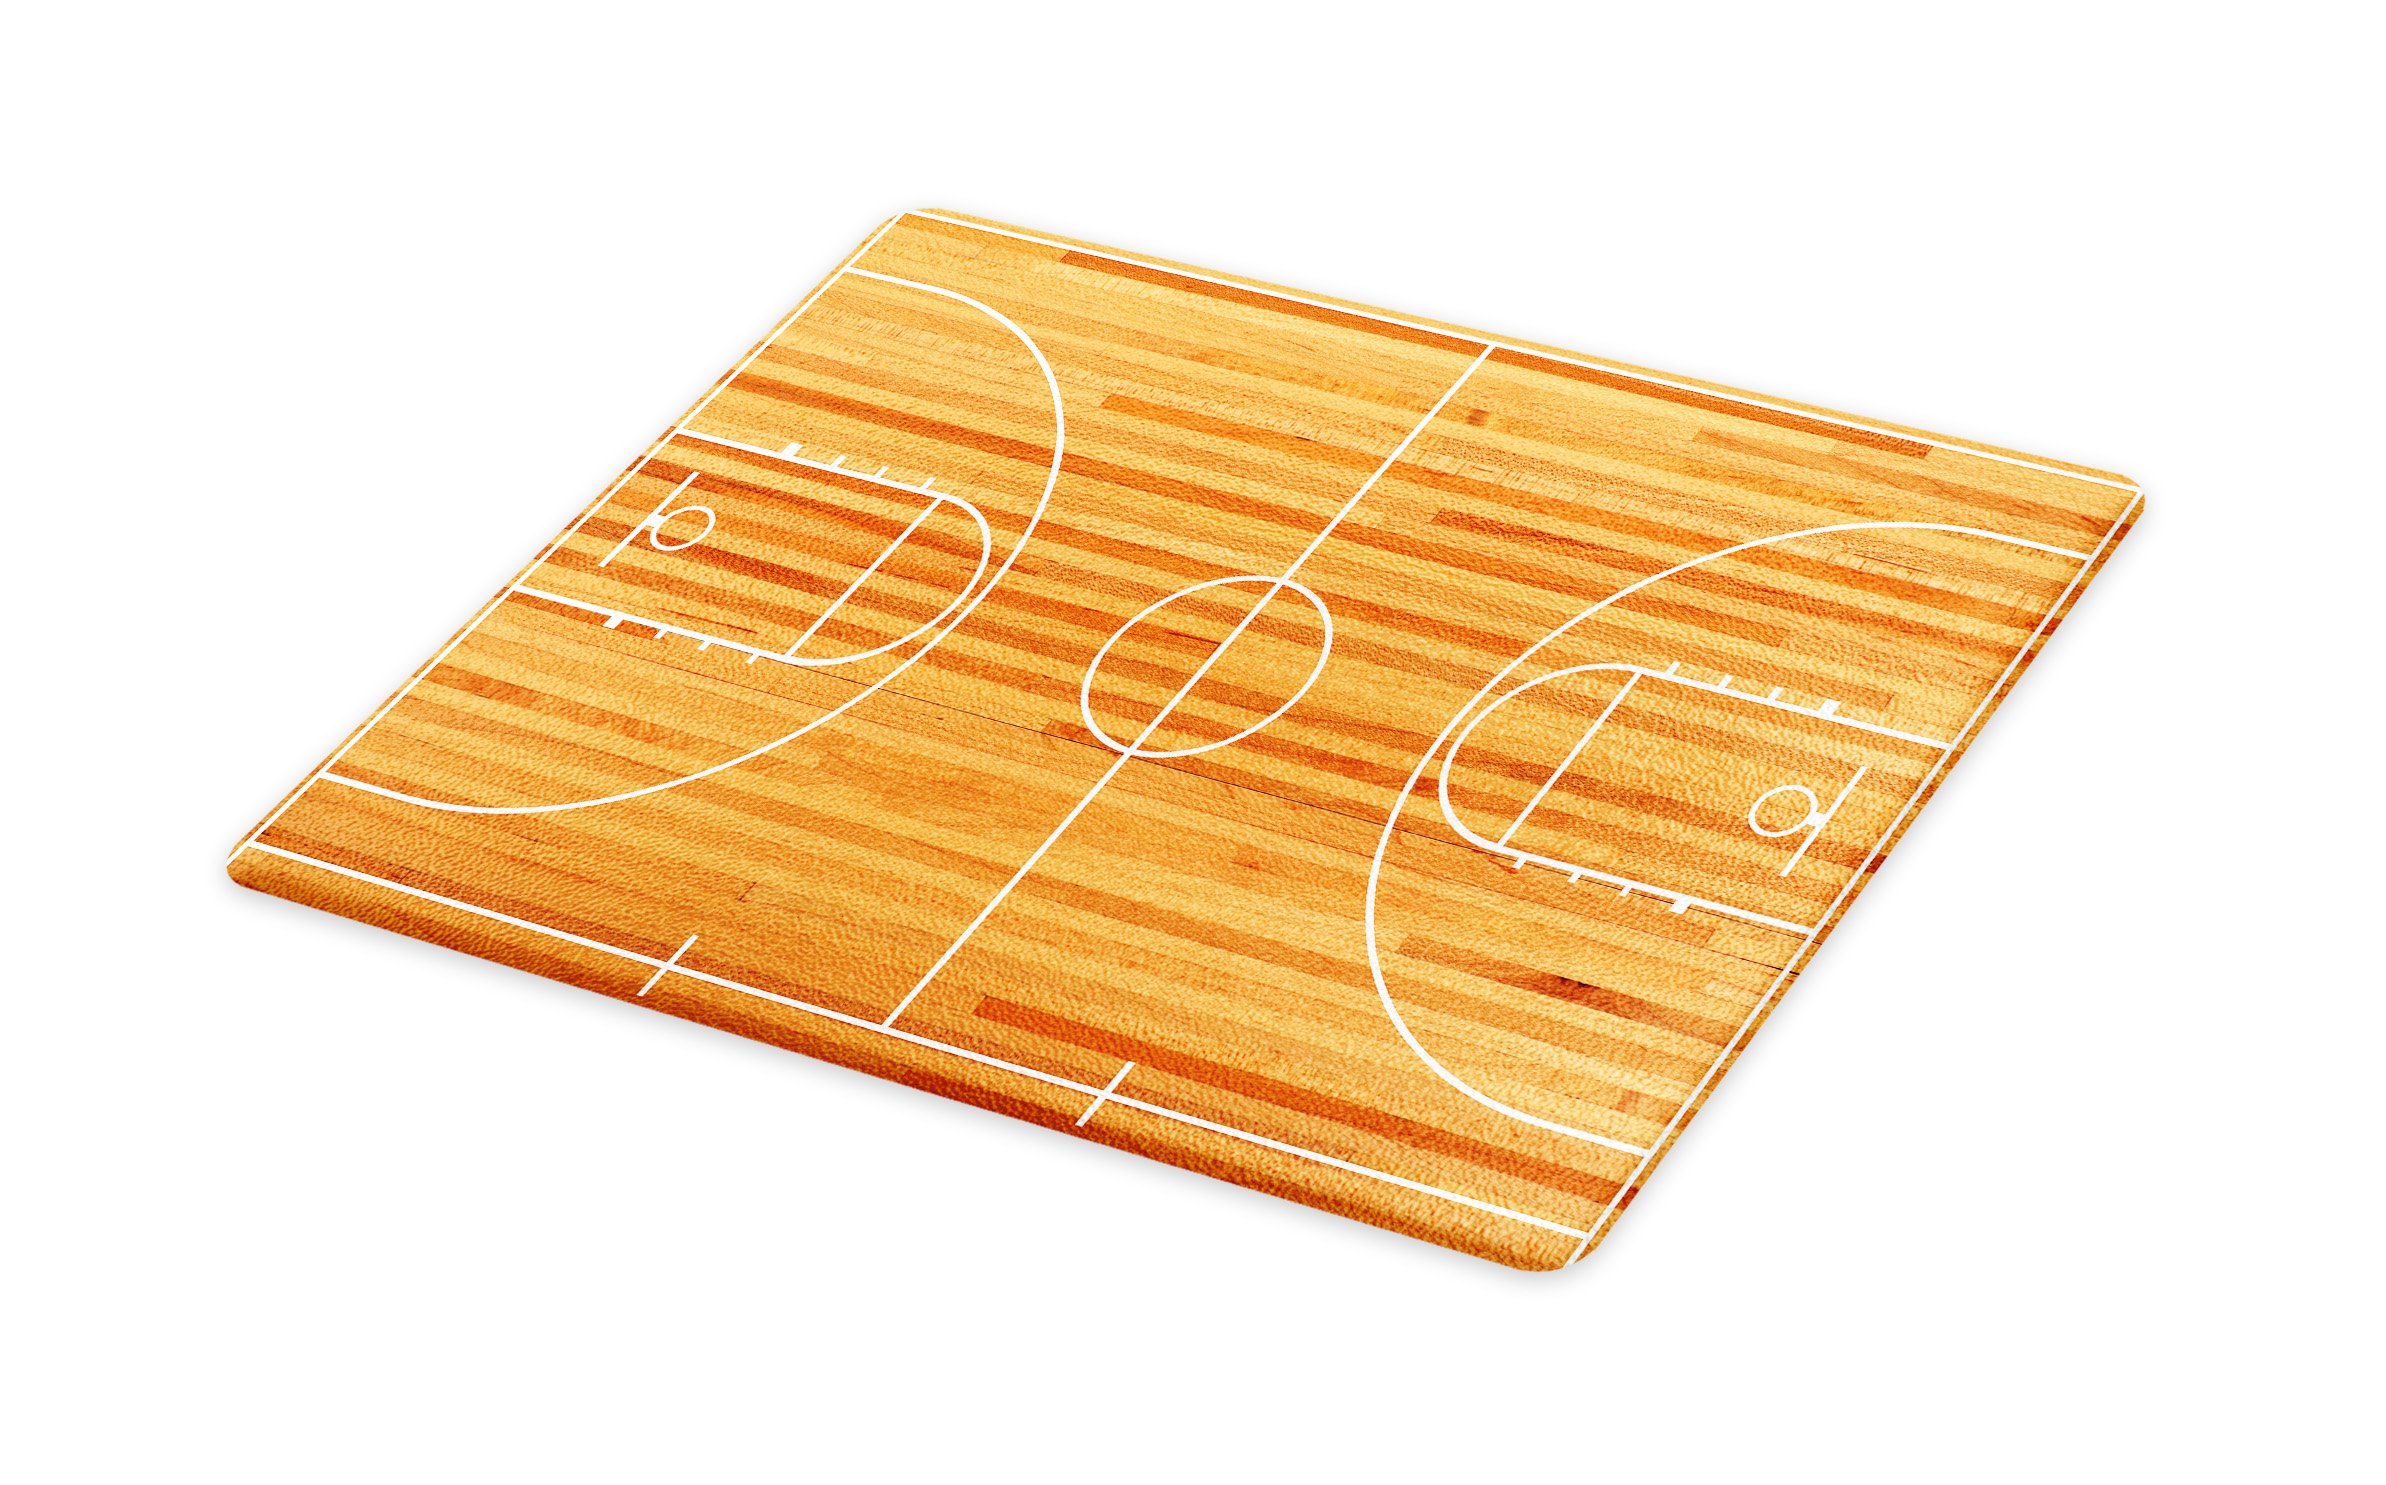 Lunarable Boy's Room Cutting Board, Standard Floor Plan on Parquet Backdrop Basketball Court Playground Print, Decorative Tempered Glass Cutting and Serving Board, Small Size, Pale Brown White